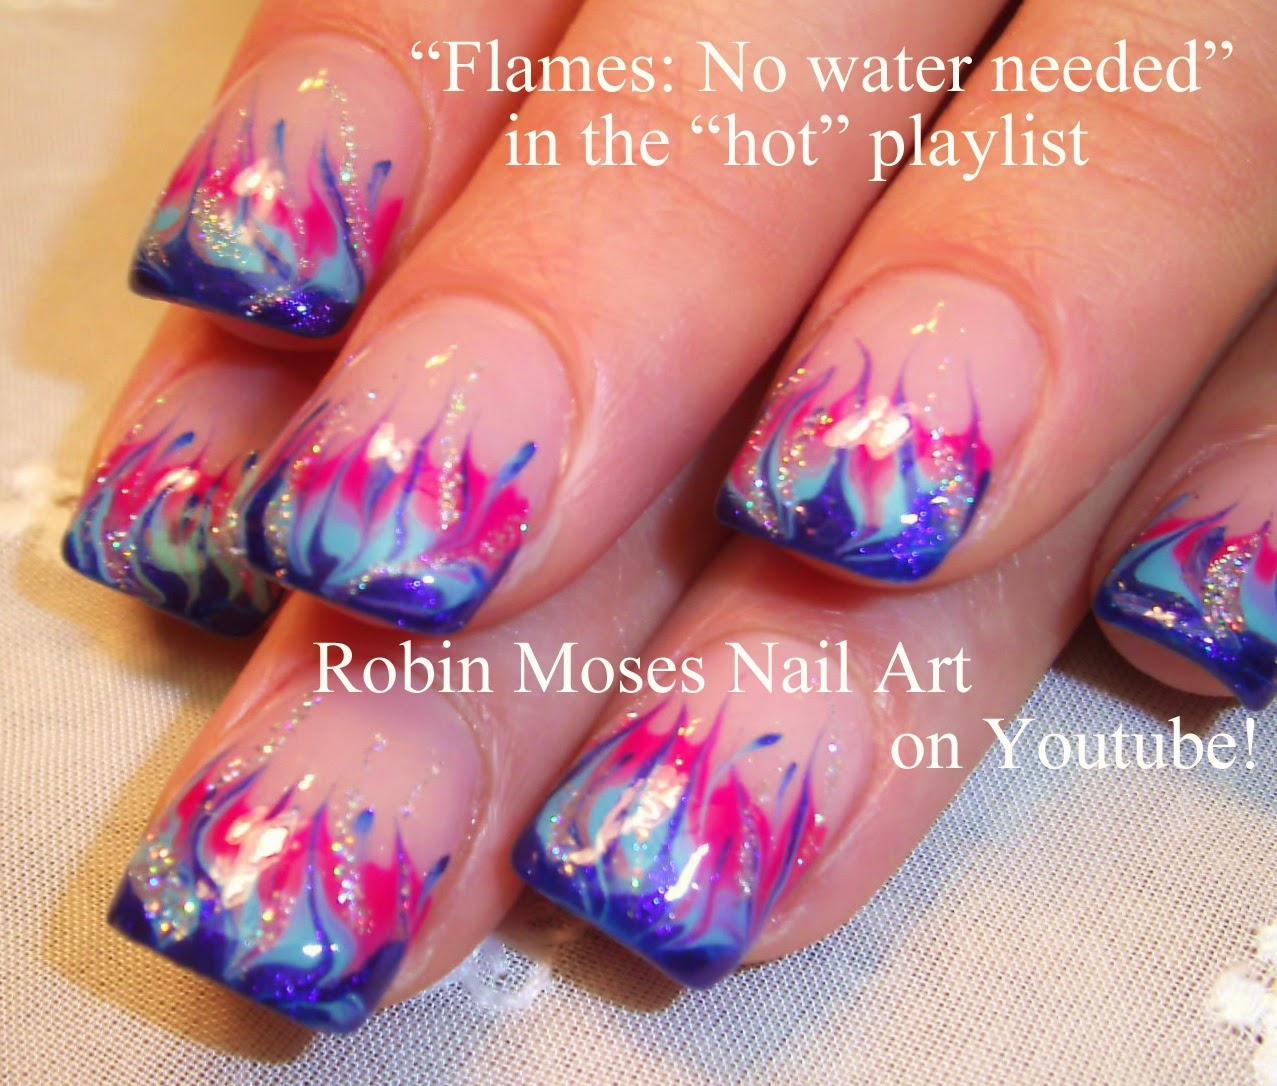 Robin Moses Nail Art February 2015: Robin Moses Nail Art: No Water Marble Neon Green Flames Up